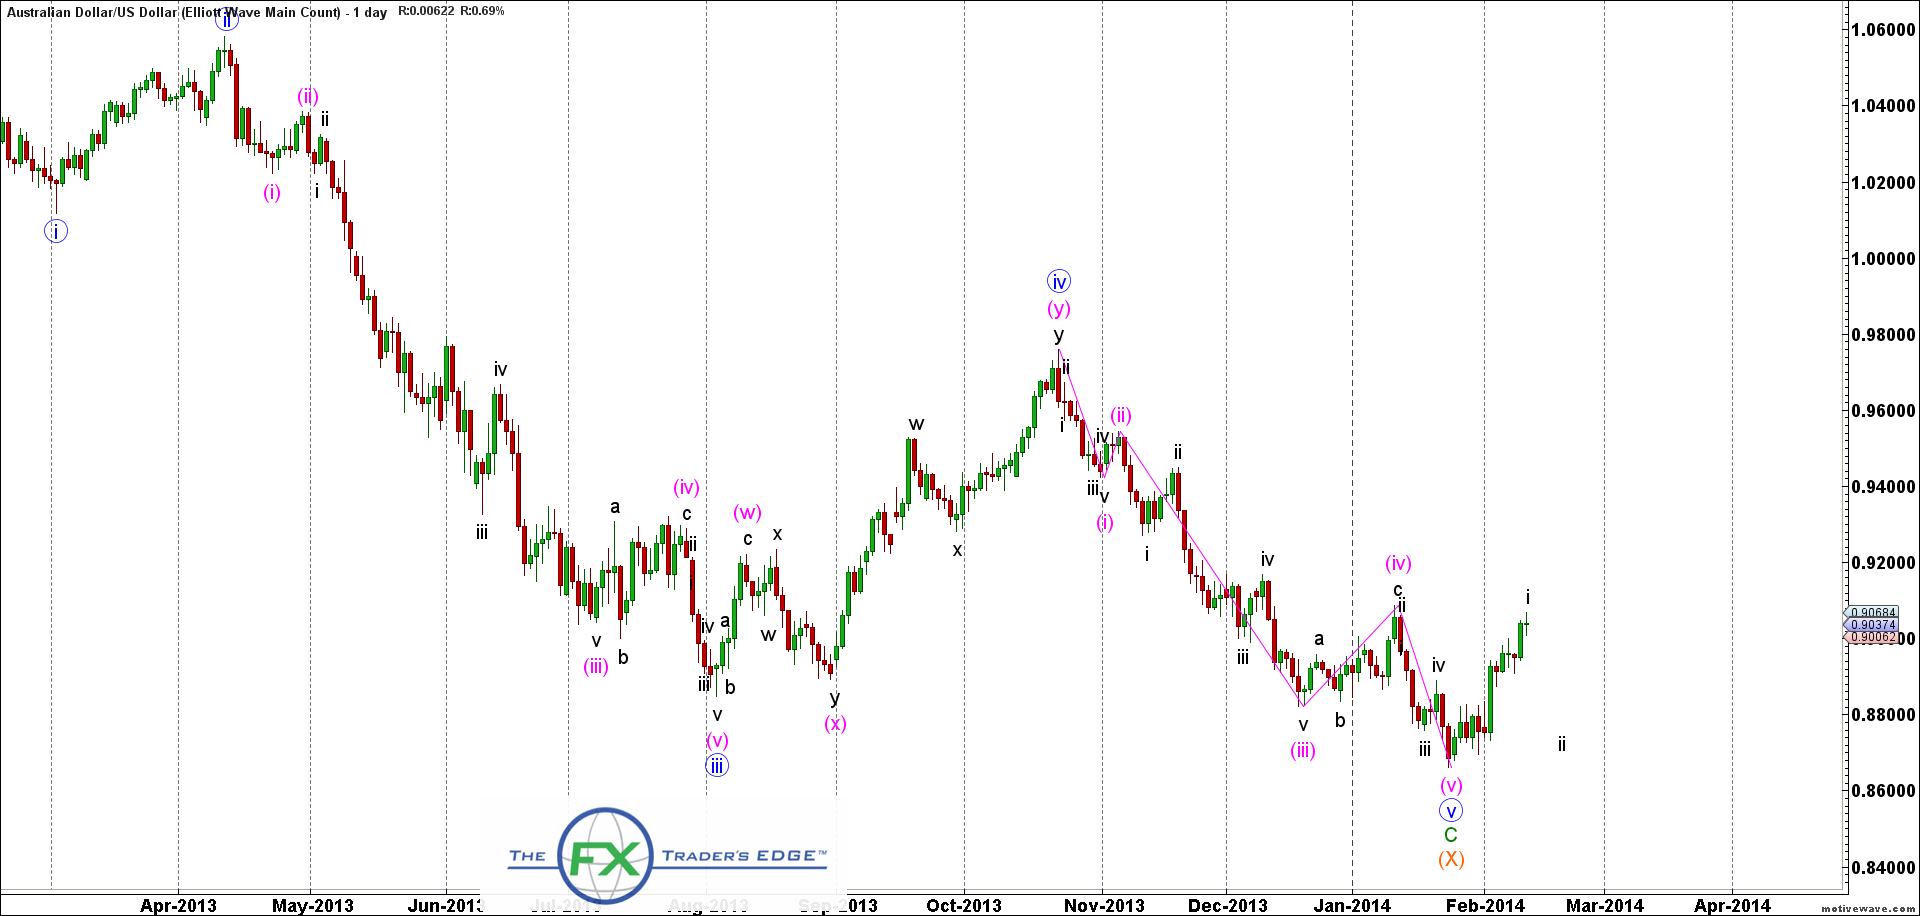 AUDUSD-Elliott-Wave-Main-Count-Feb-12-0836-AM2-1-day